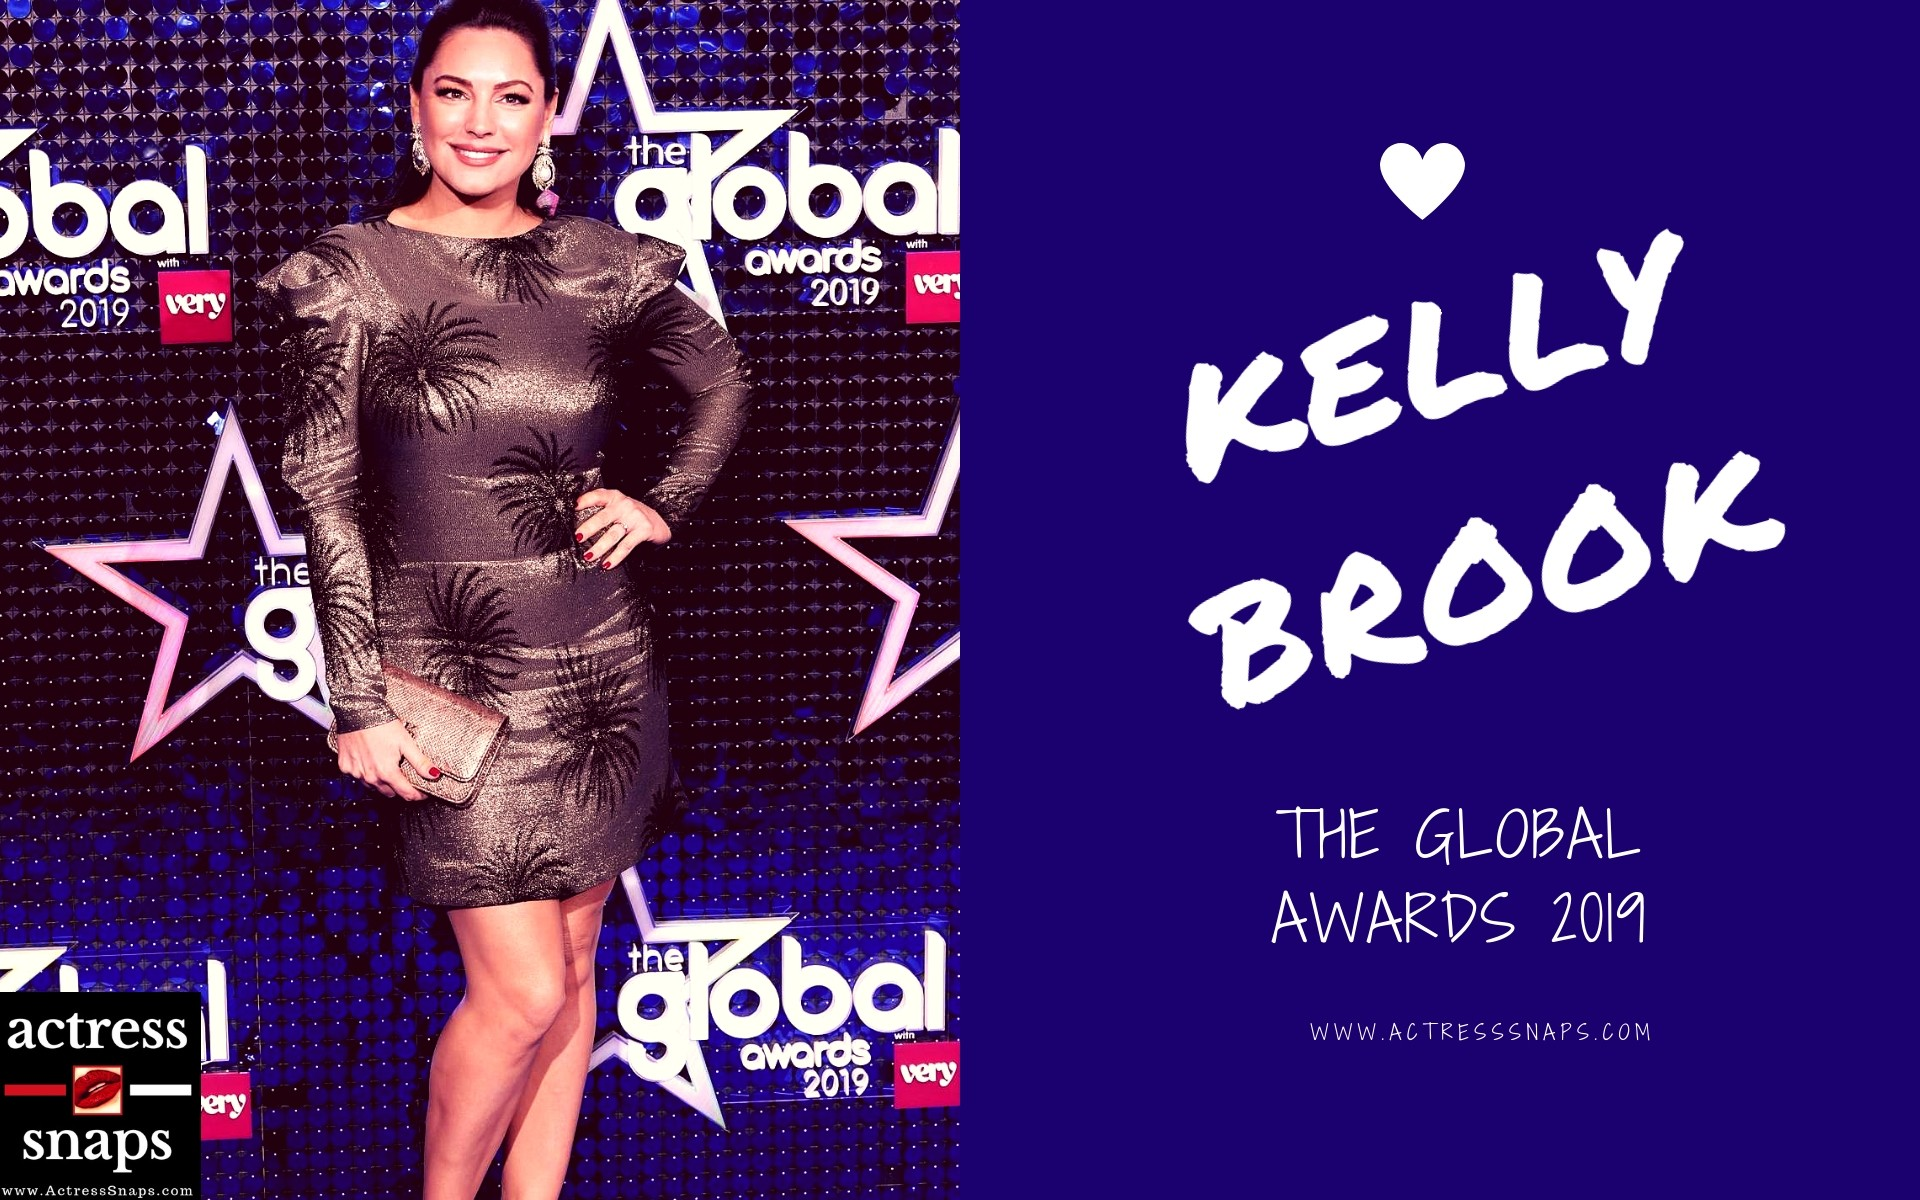 Kelly Brook Pictures - Global Awards 2019 - Sexy Actress Pictures | Hot Actress Pictures - ActressSnaps.com